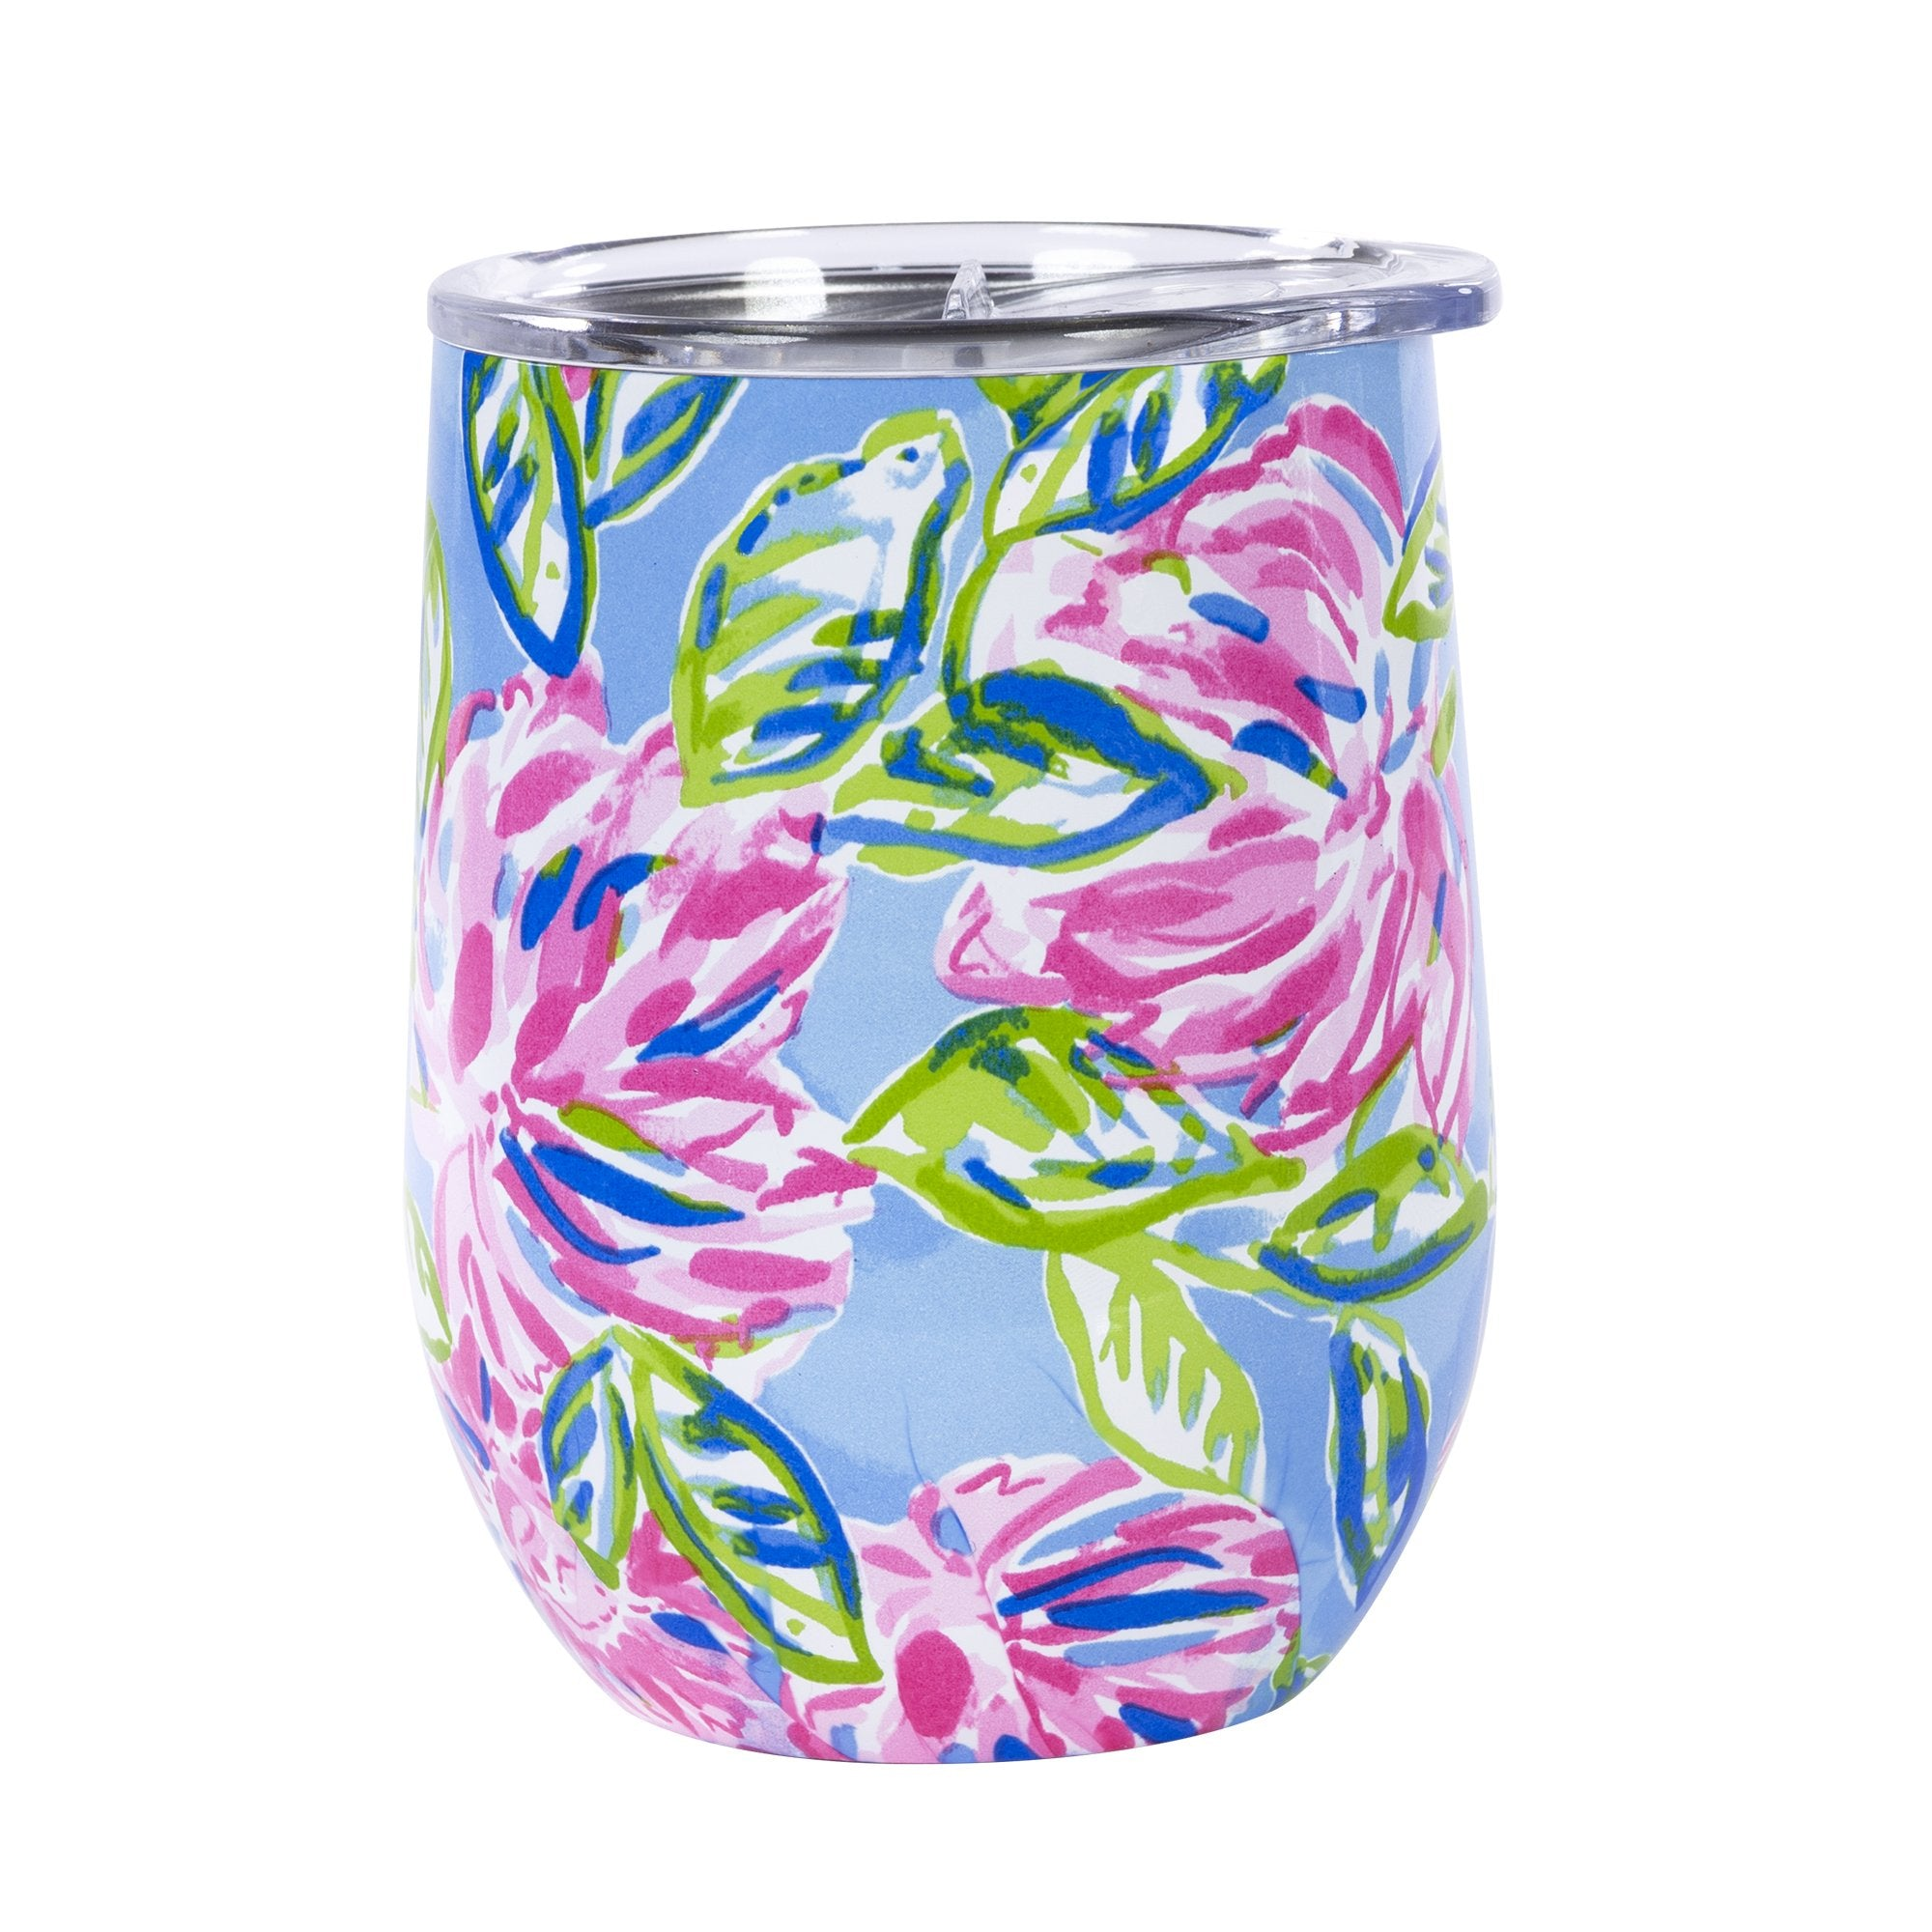 Lilly Pulitzer Stainless Steel Wine Glass With Lid, Totally Blossom